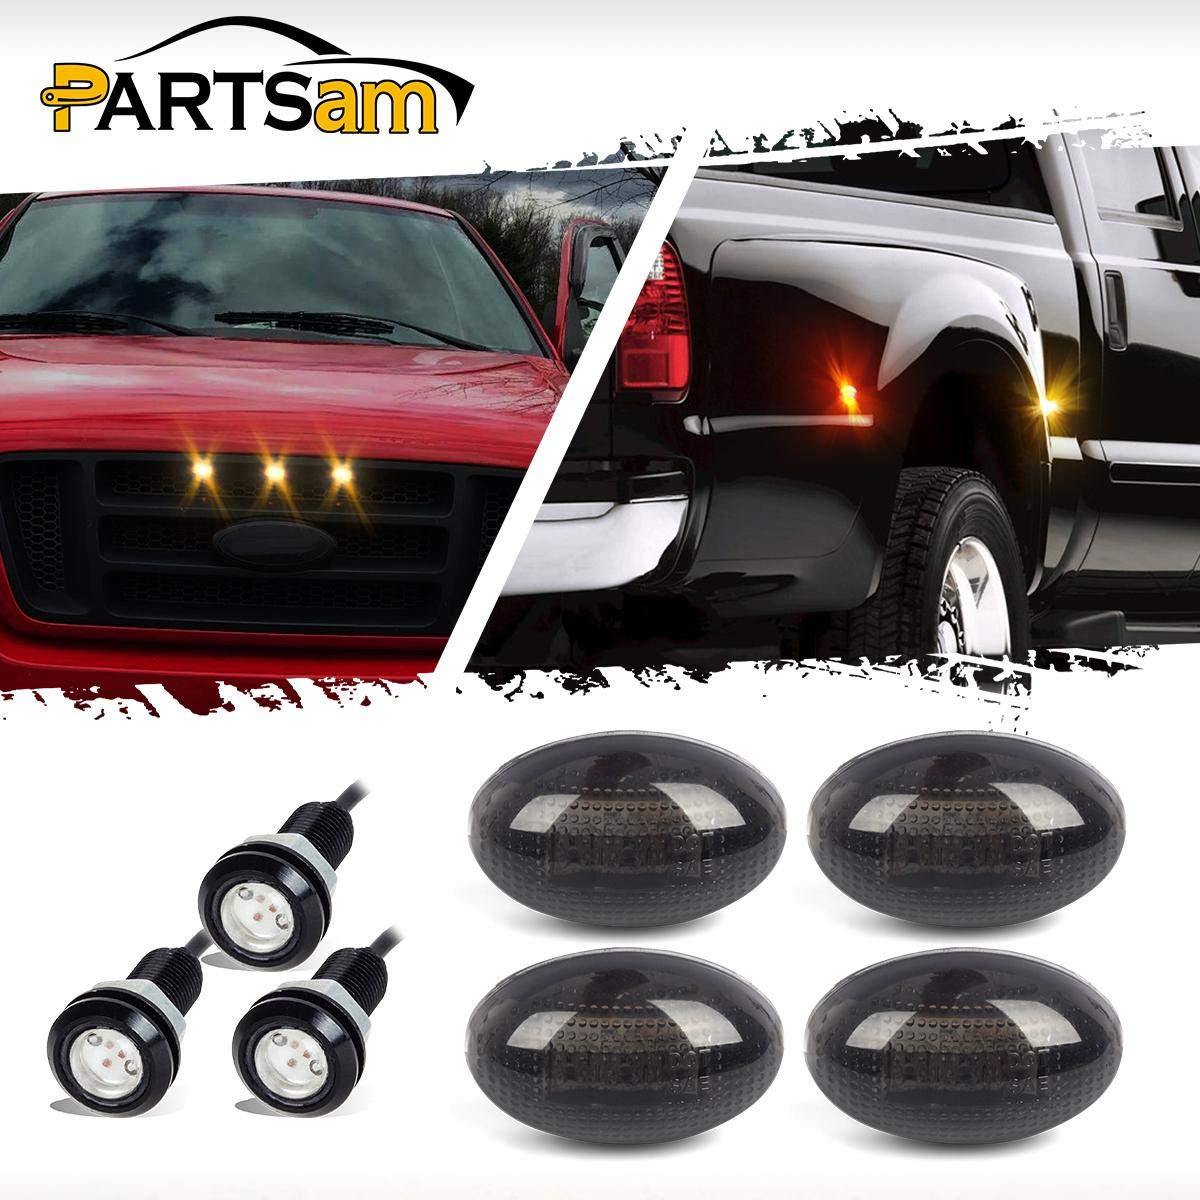 Partsam 4Pcs Dually Bed Fender Side Marker LED Lights 3Pcs SVT Raptor Style Amber LED Grille Lighting Kit Waterproof Compatible with Ford F350//F450//F550 Heavy Duty1999-2010 Aftermarket Replacement